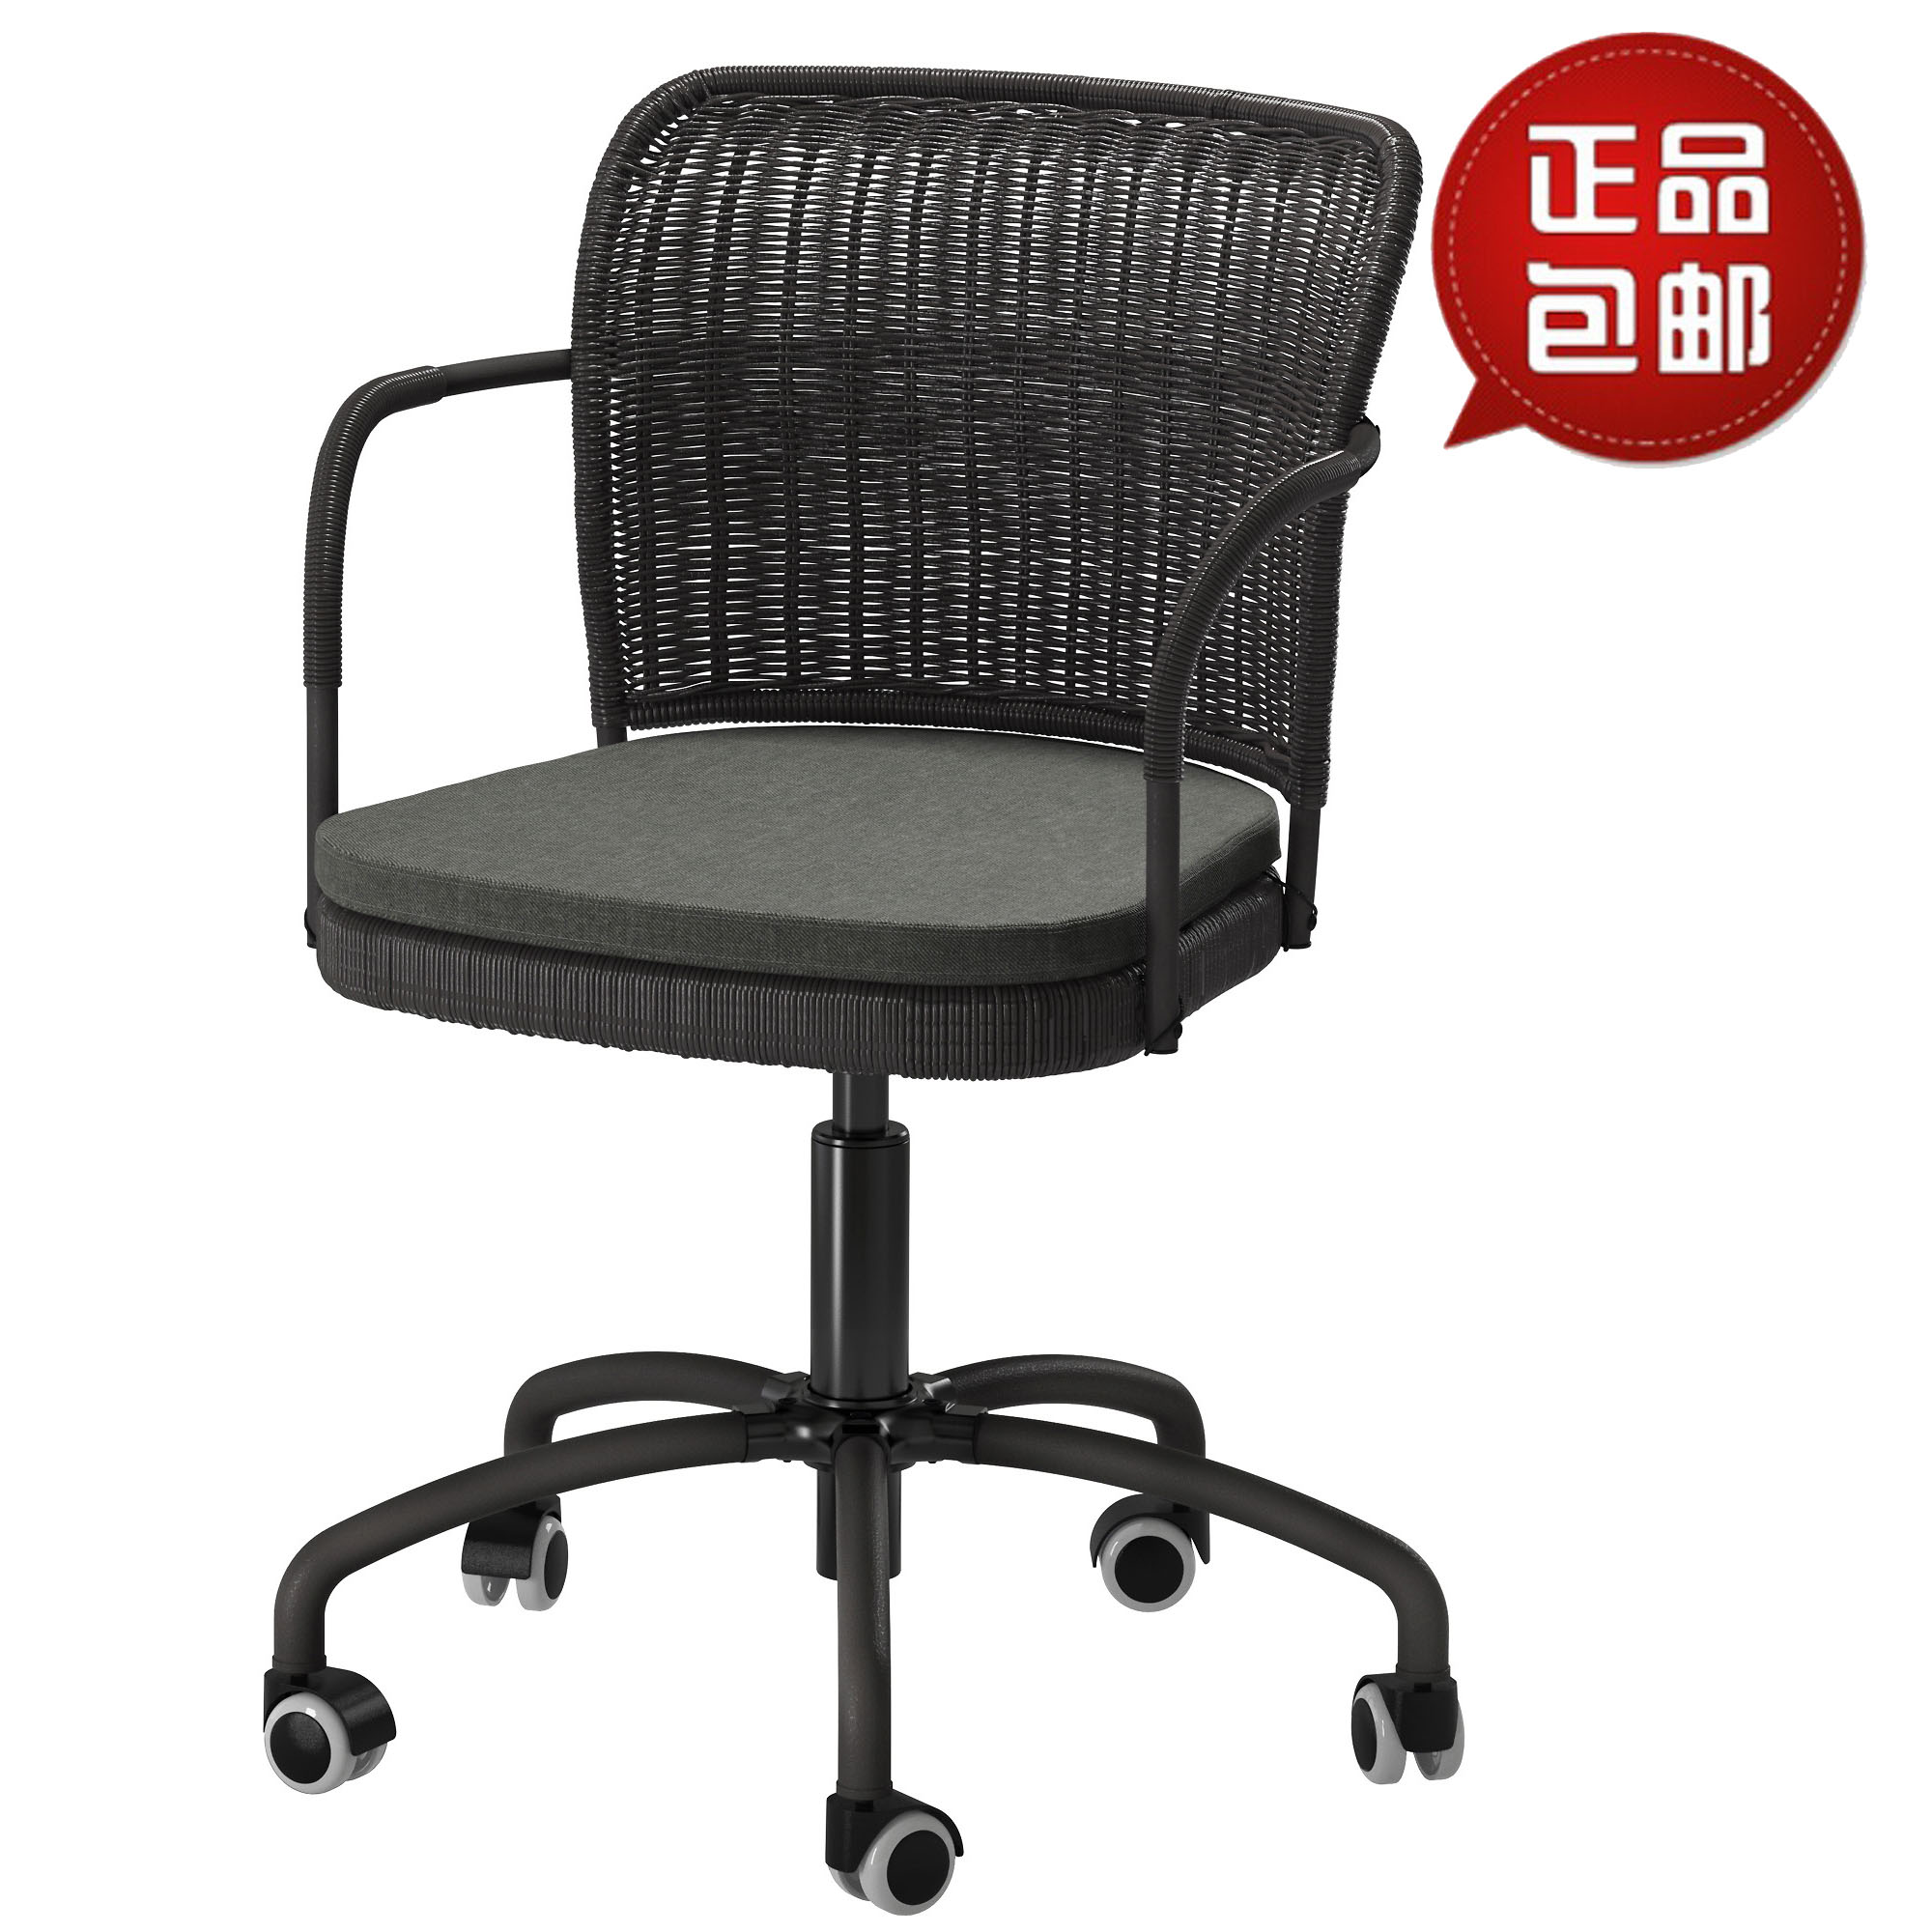 USD 166 10] Glee Geer weaving modern pastoral office puter